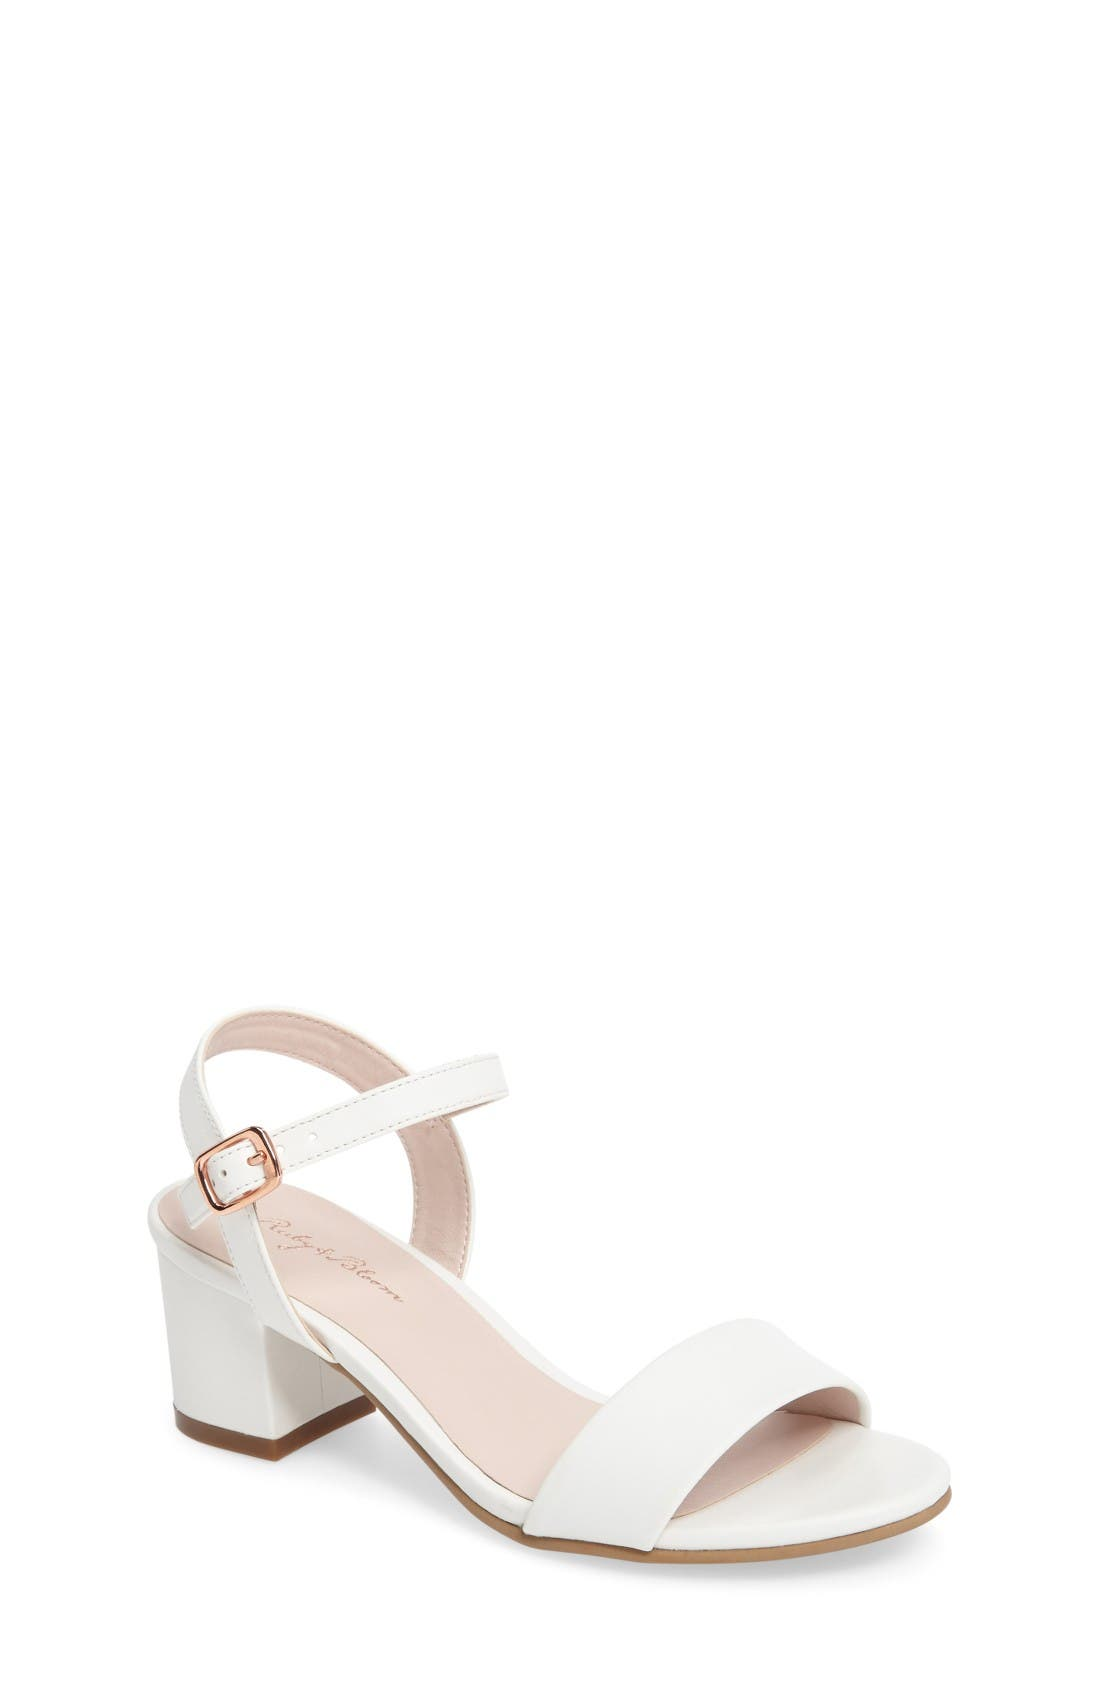 Danni Block Heel Sandal,                             Main thumbnail 1, color,                             White Faux Leather